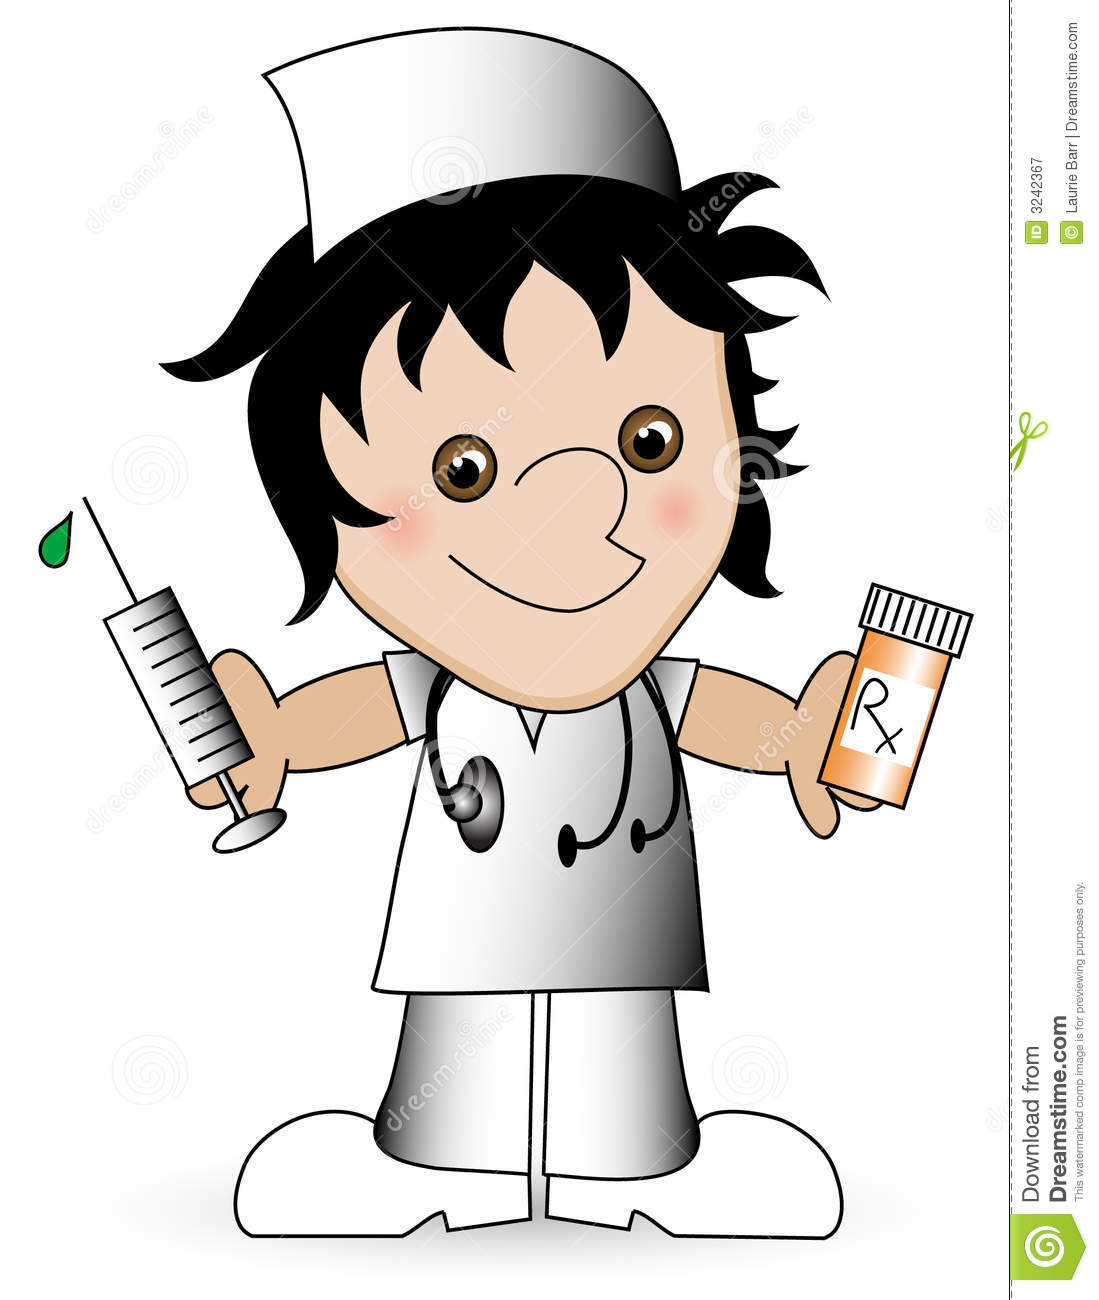 Cartoon Nurse. Royalty Free Stock Photography - Image: 3242367